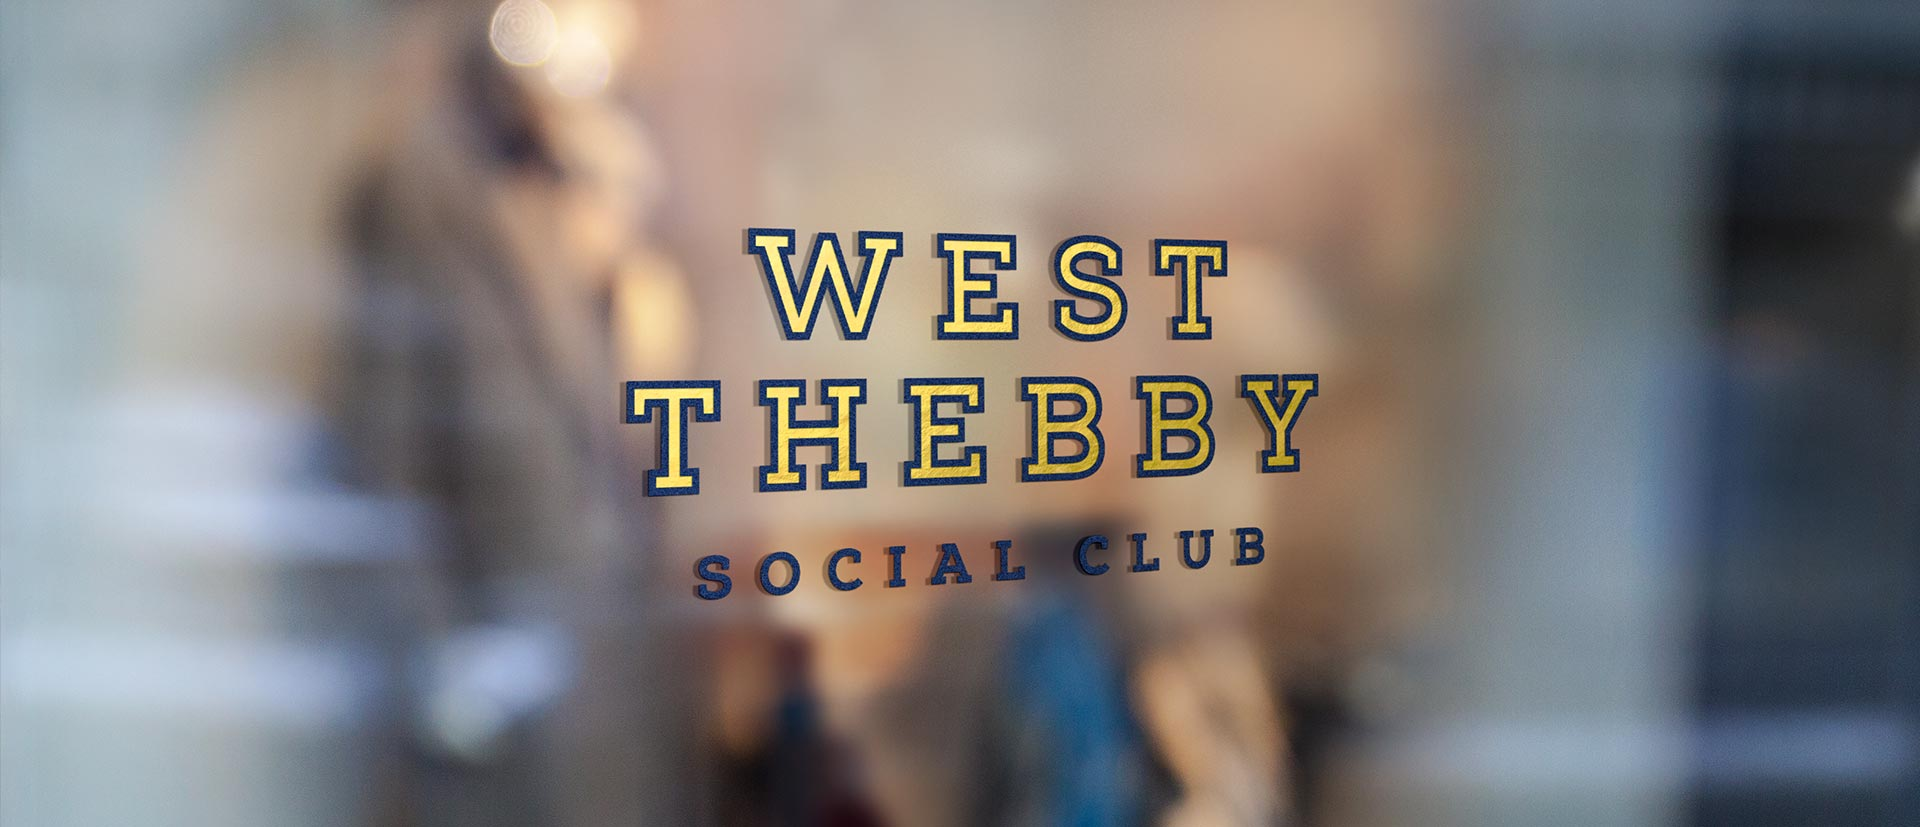 West Thebby Social Club Window Decal